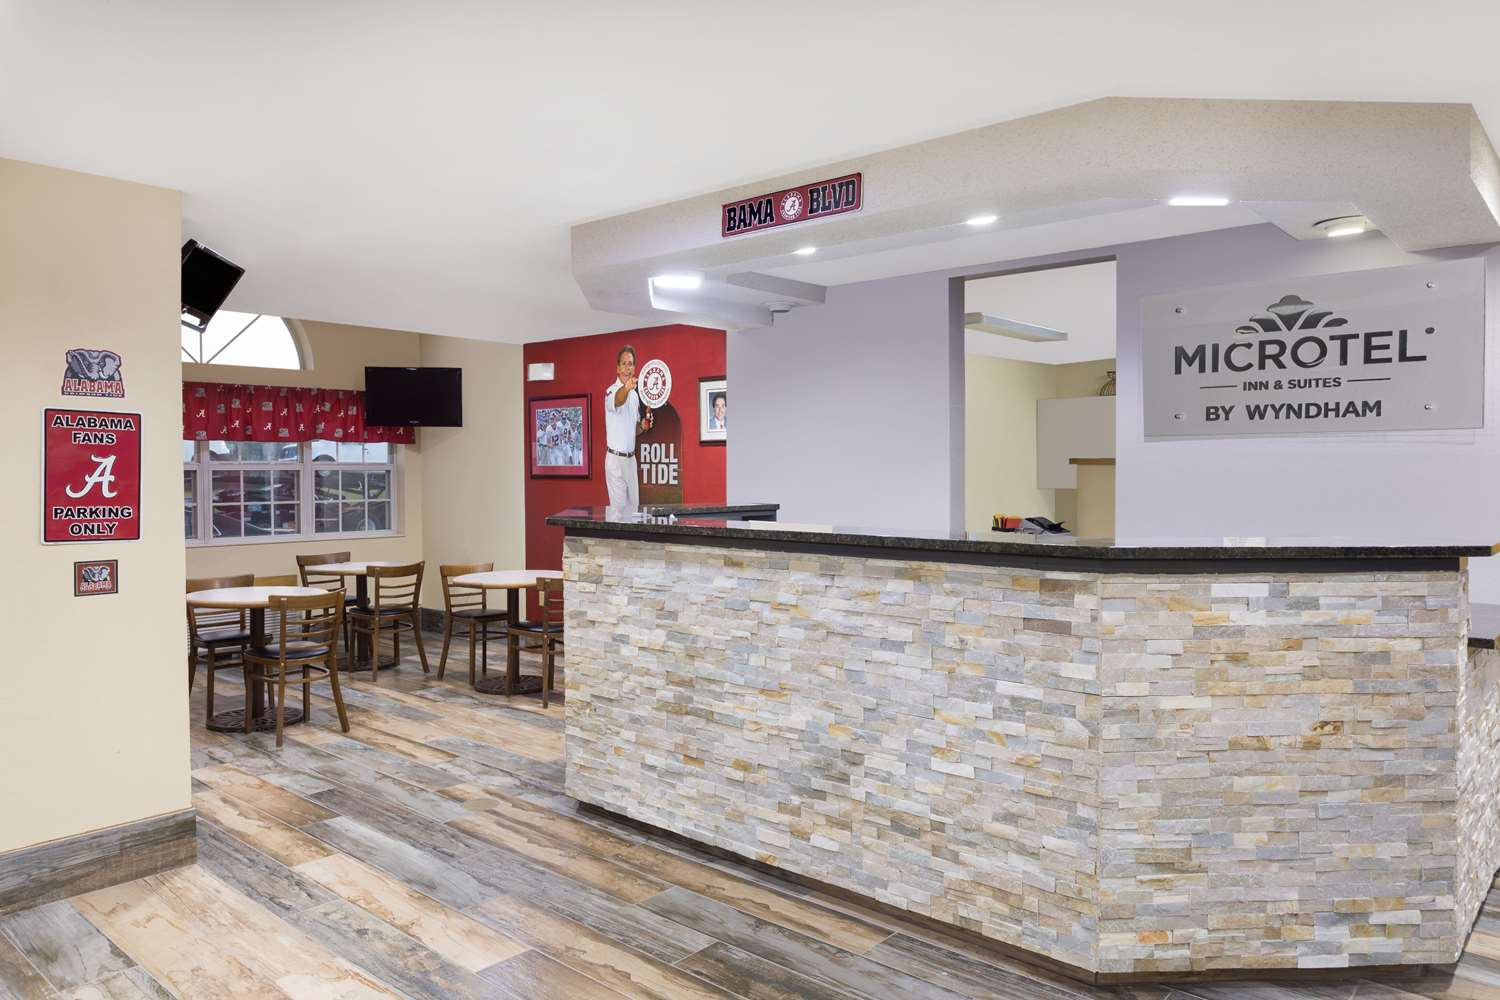 Lobby - Microtel Inn by Wyndham Cottondale